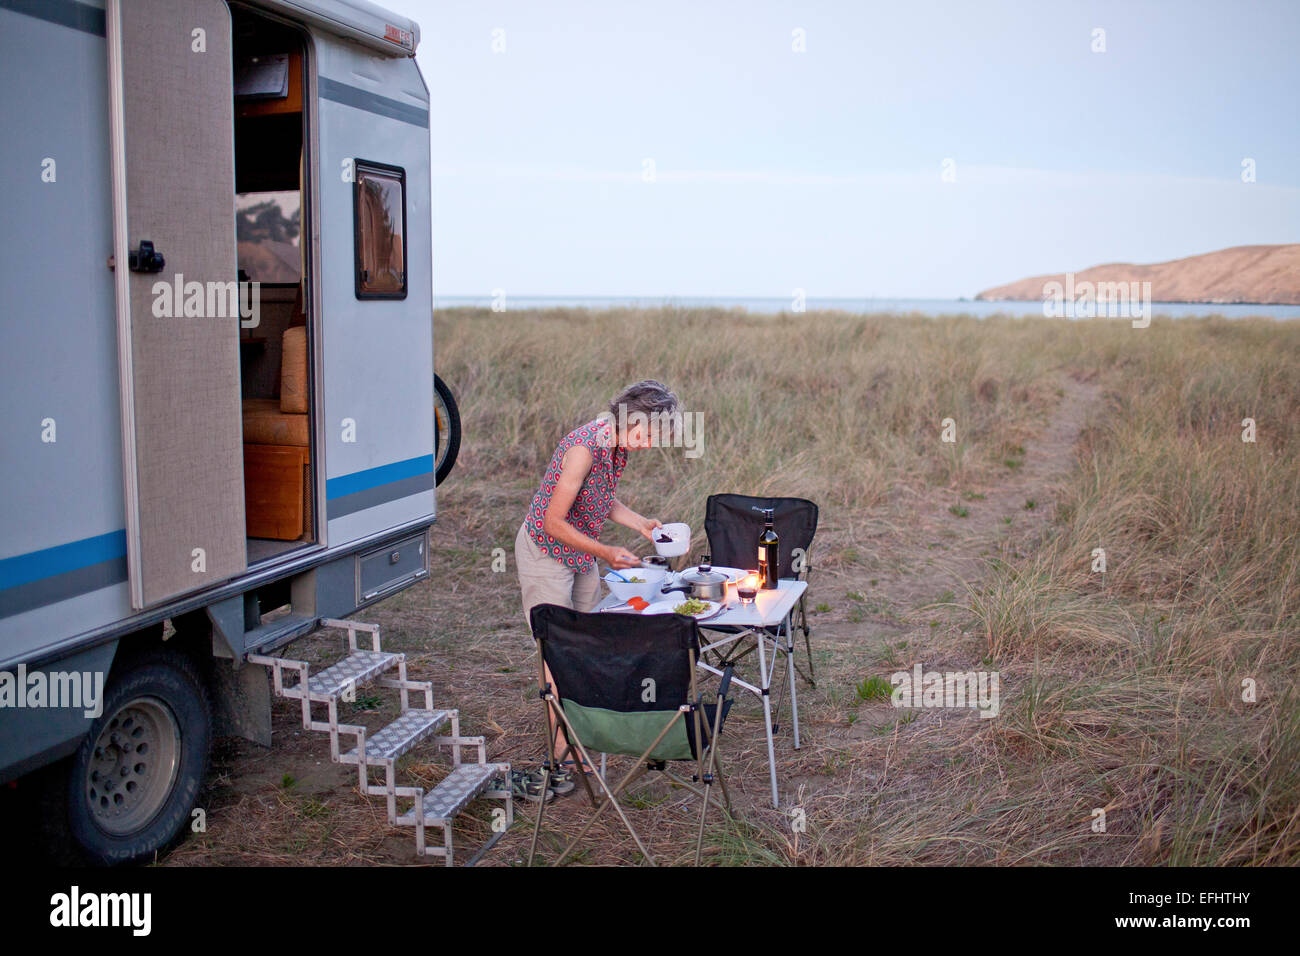 Okains Bay, campsite, camper, mobile home, Okains Bay, Banks Peninsula, South Island, New Zealand - Stock Image